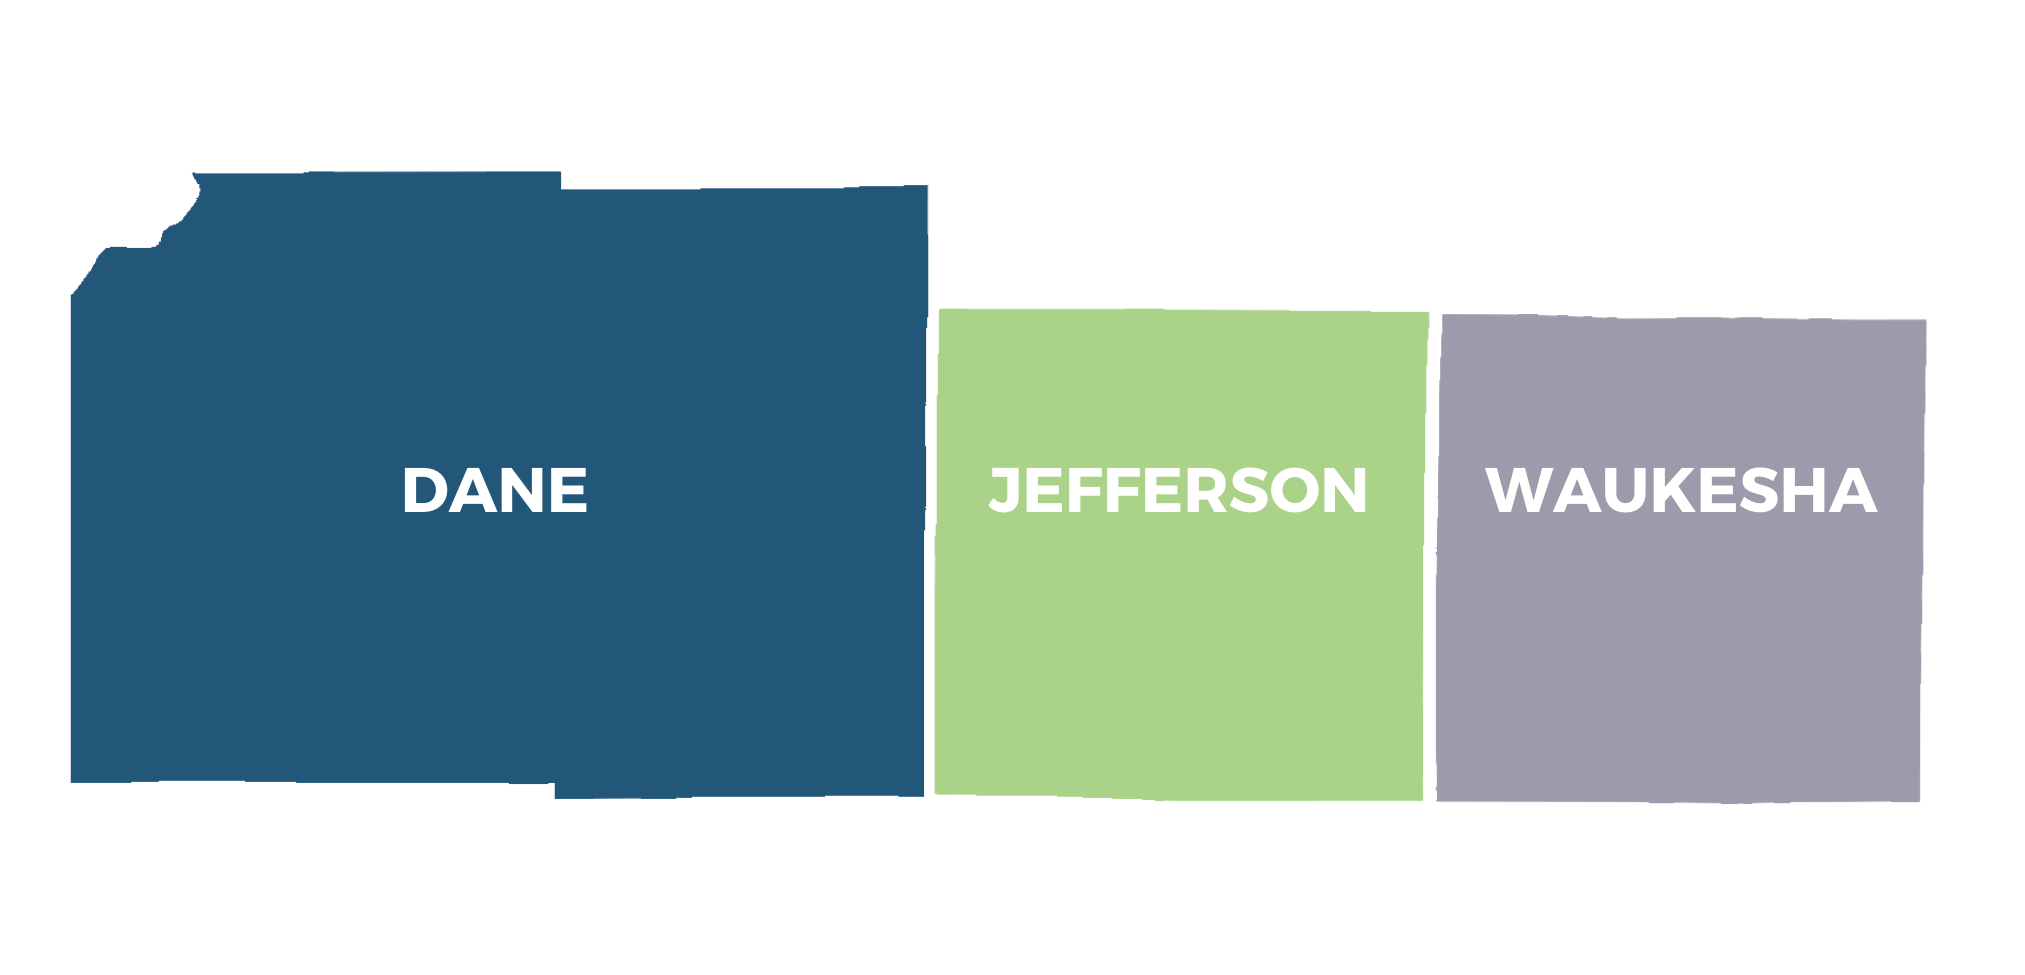 decorative outlines of dane county, jefferson county, and waukesha county